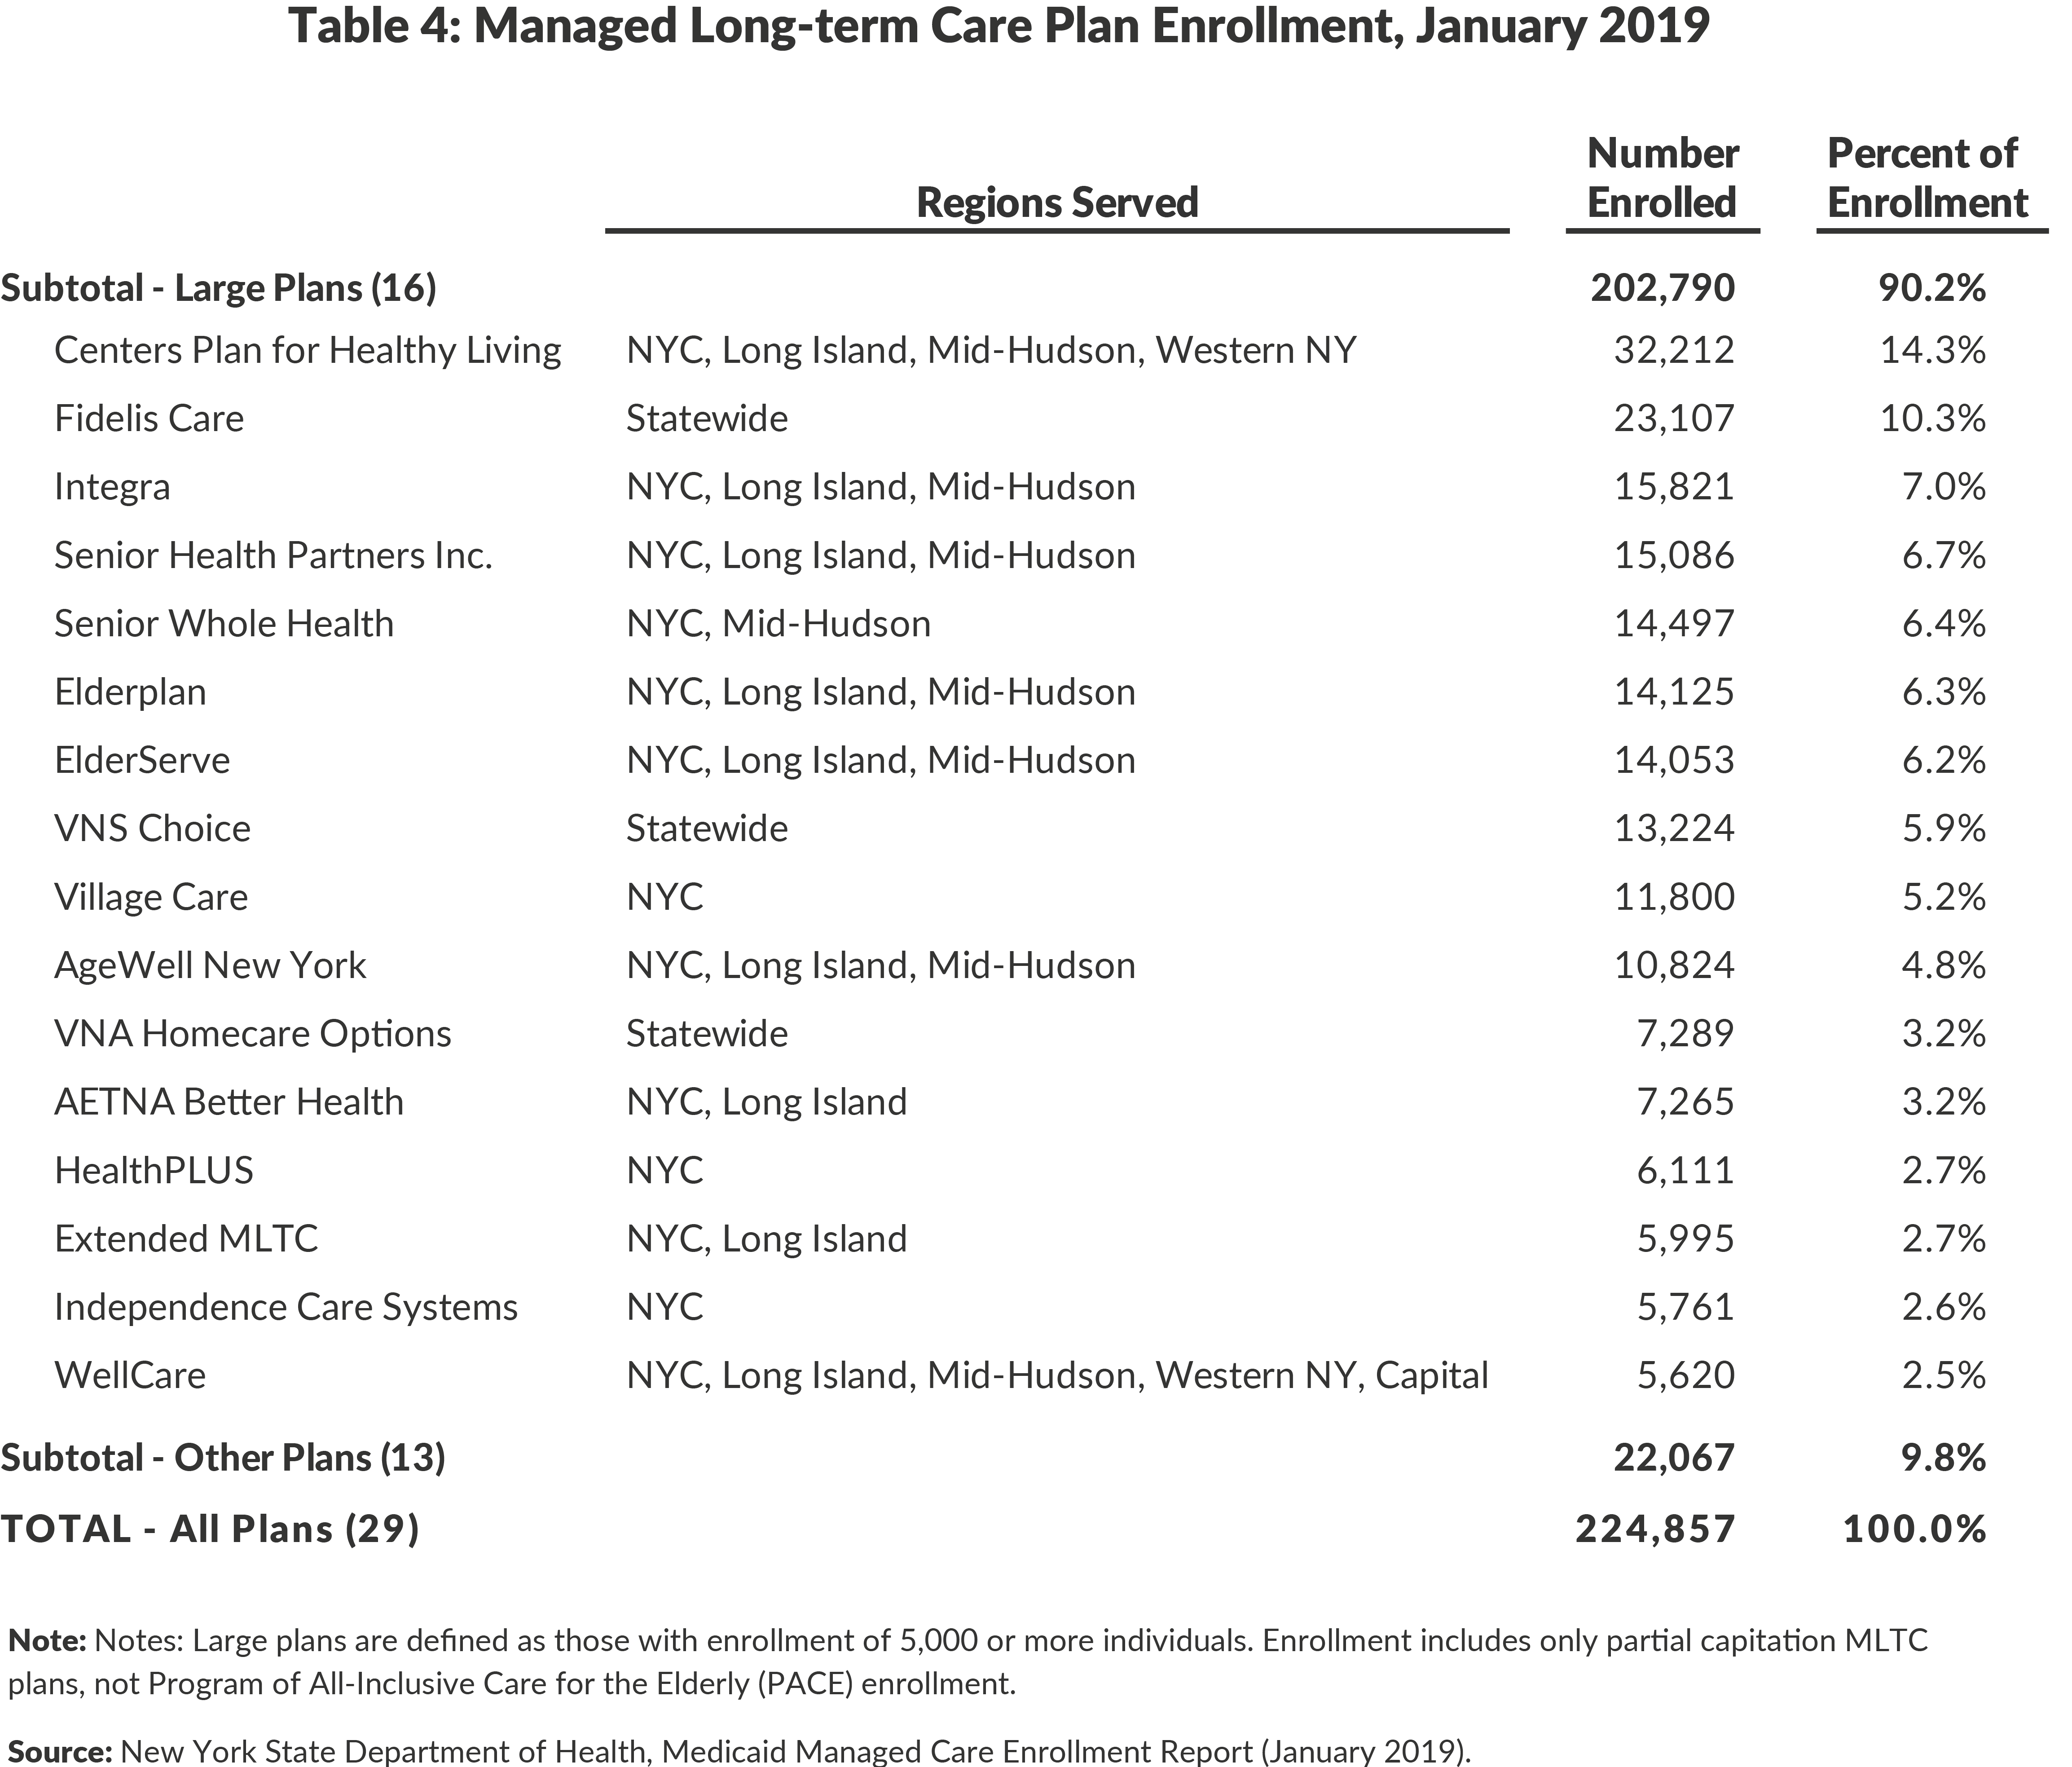 Table 4: Managed Long-term Care Plan Enrollment, January 2019